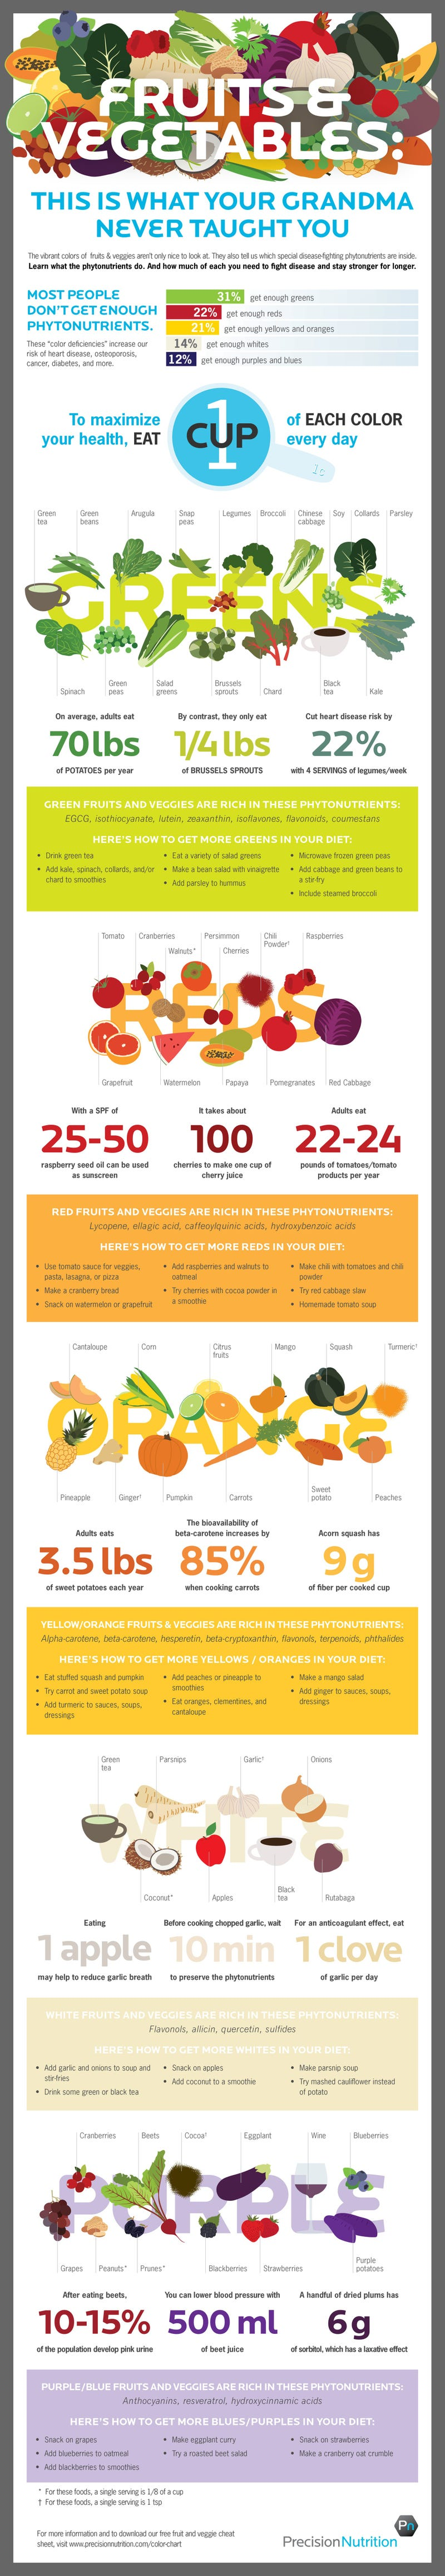 This Infographic Shows the Phytonutrients You Need to Stay Healthy